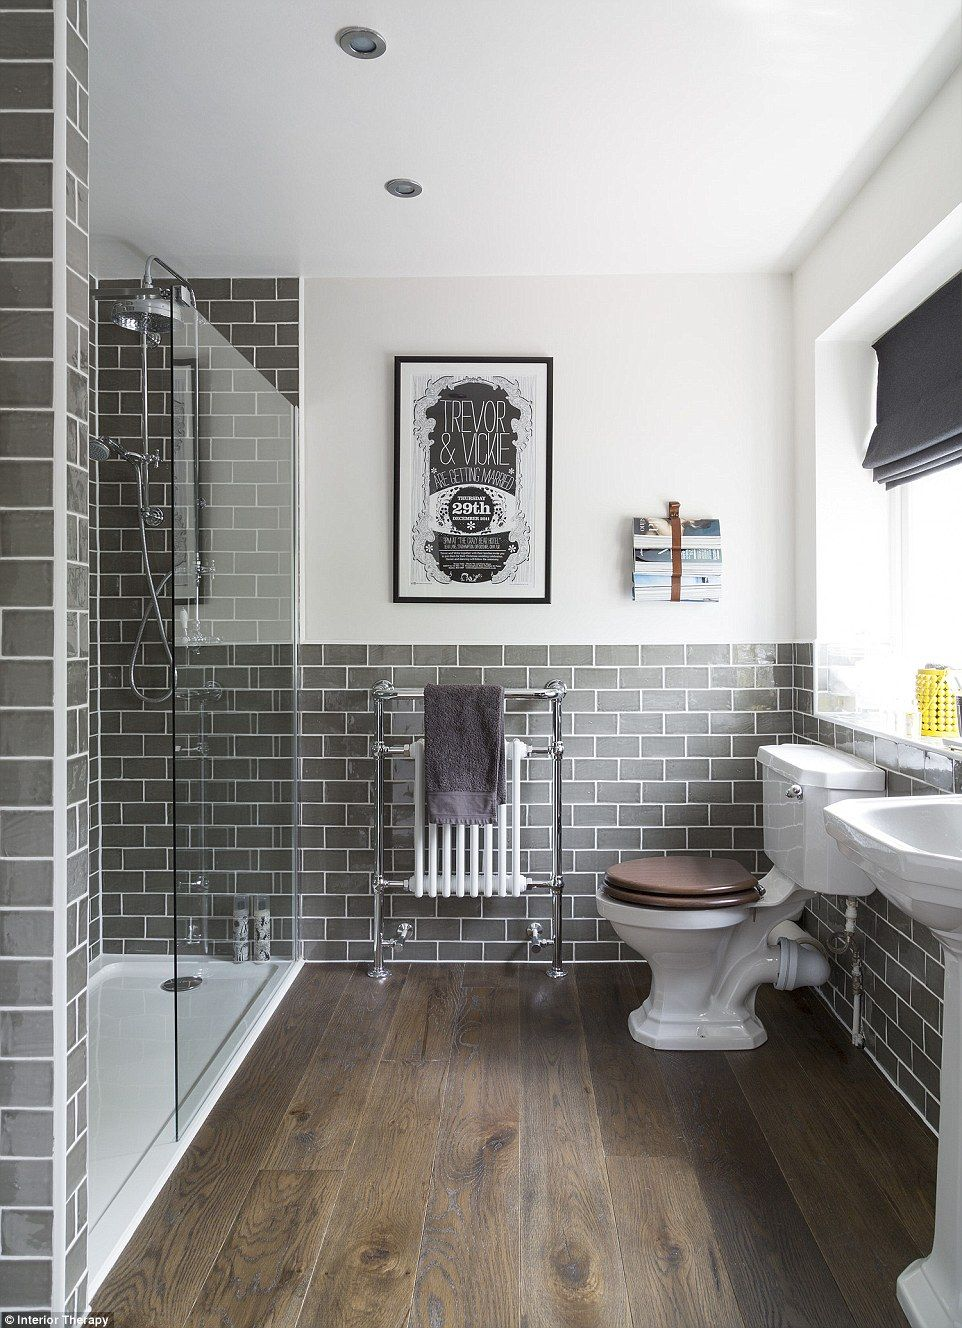 This Image Of A Refurbishment In Buckinghamshire, Posted By Interior  Therapy, Has Been Saved